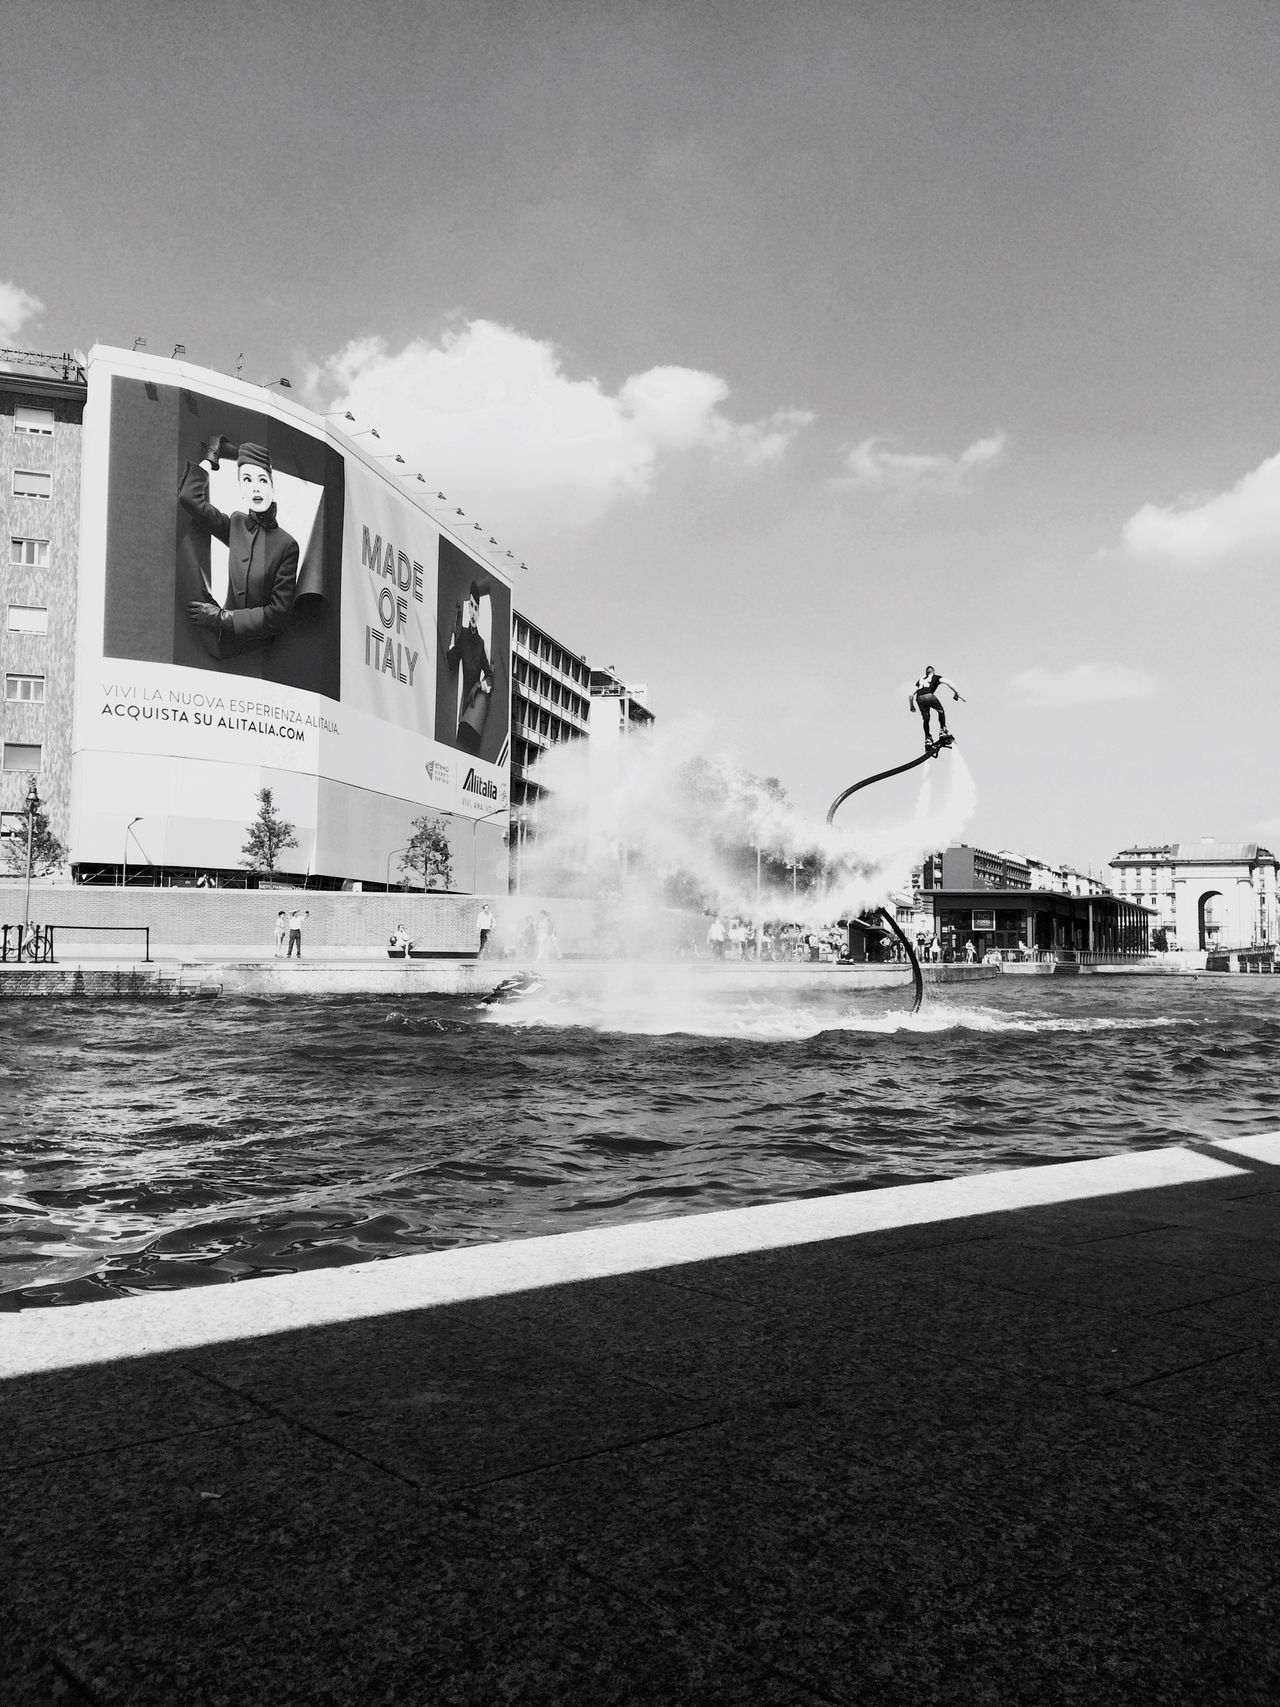 Darsena Milan,Italy Flyboard Water Stunts Beautiful Moment Beautiful Day Landascape Love Photography Cool City Life Filters & Effects Black & White 4 IPhone 5S 2016☀️